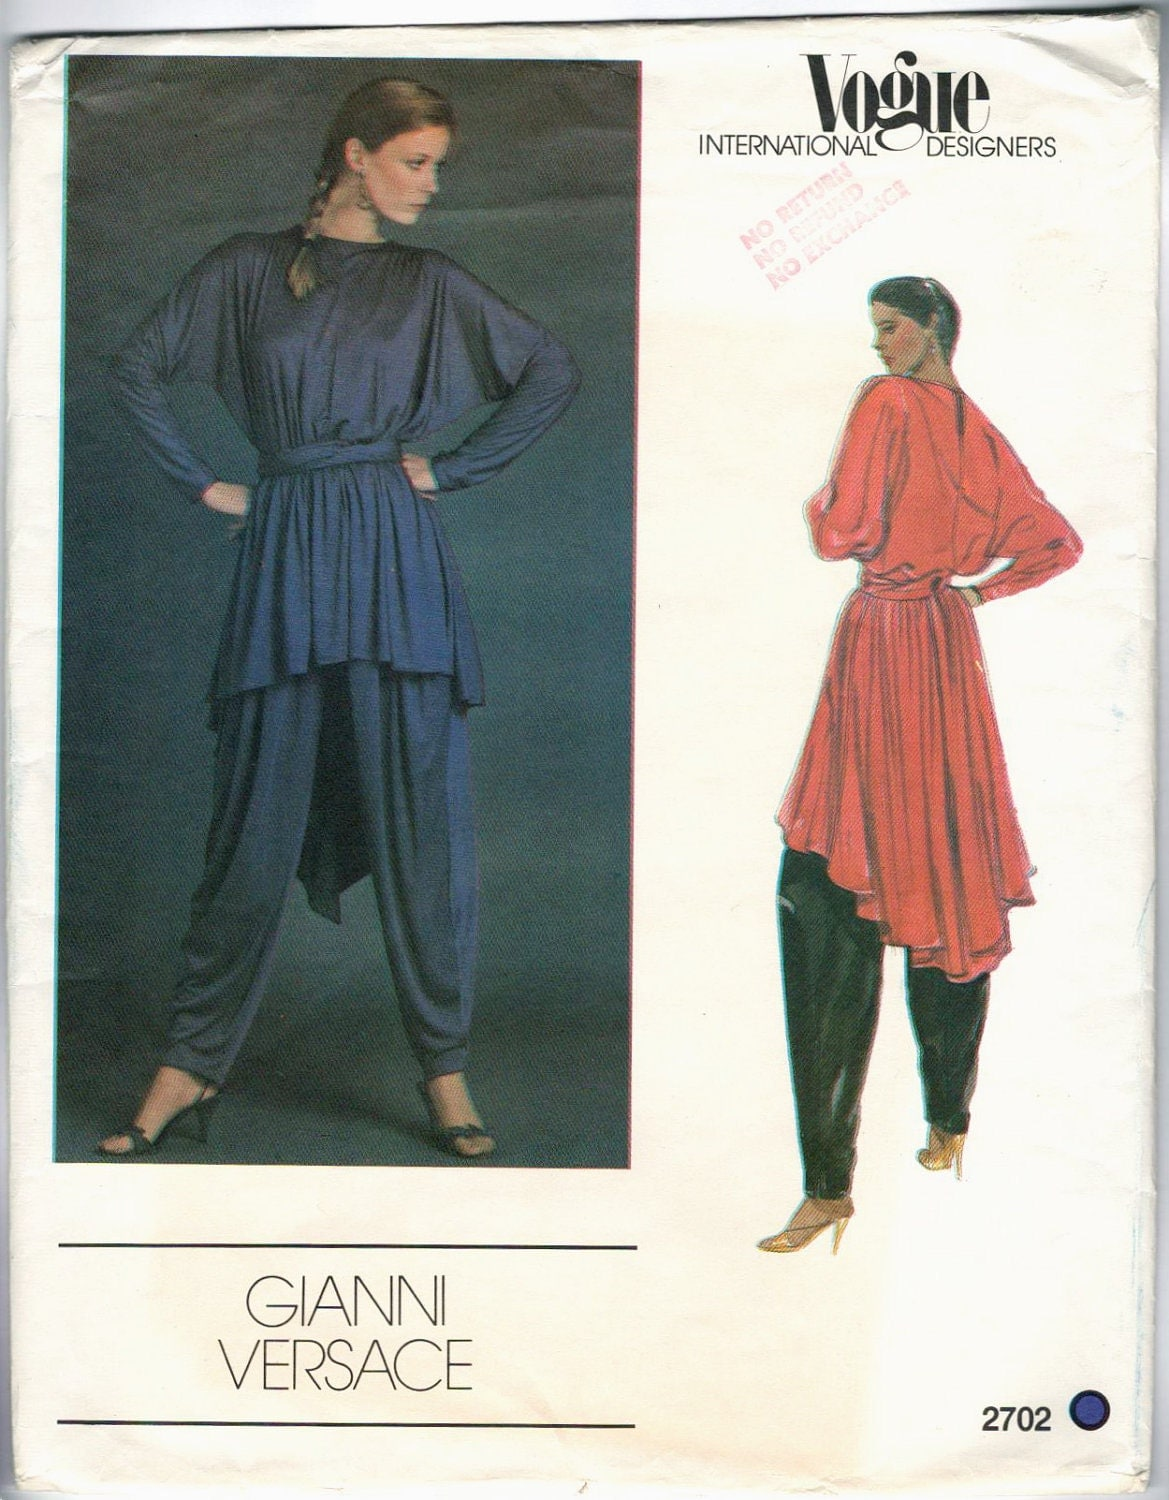 Vogue 2702 by Gianni Versace: 1980s pattern for a draped tunic, harem pants, and sash